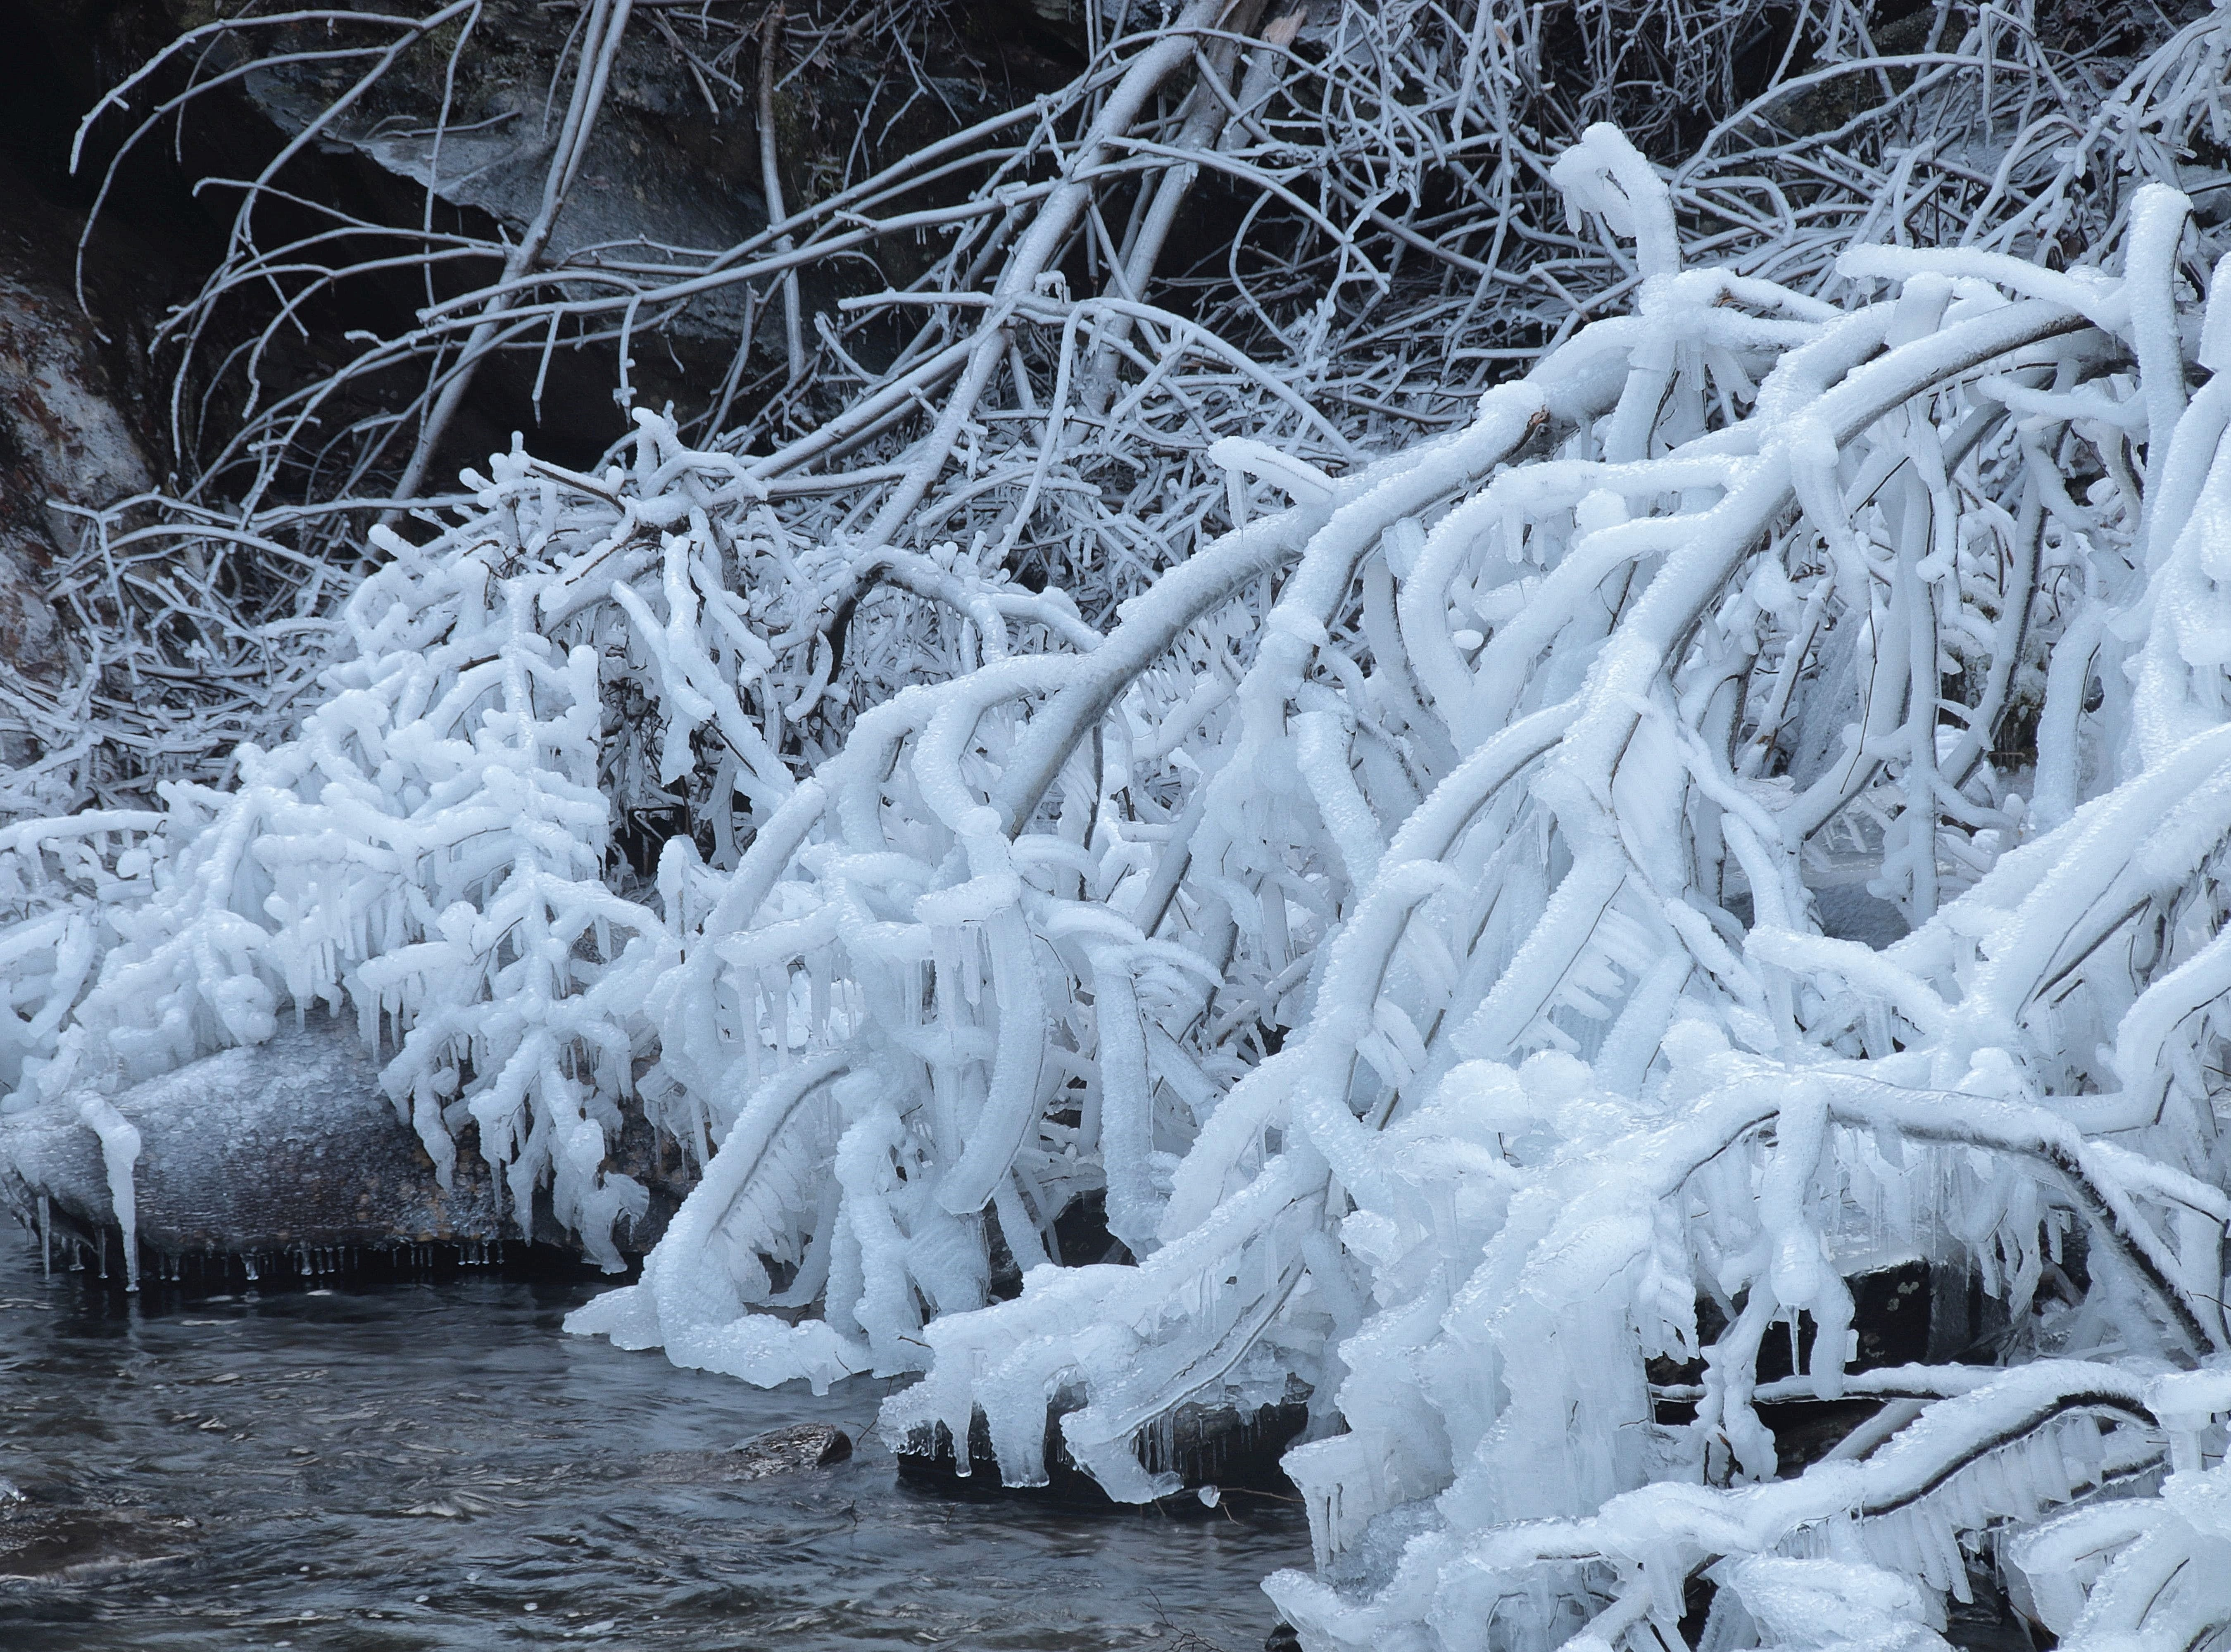 Patricia Serio photographed the iced over trees on the base of Bald River Falls in the Cherokee National Forest on Thursday, Jan. 31, 2019.